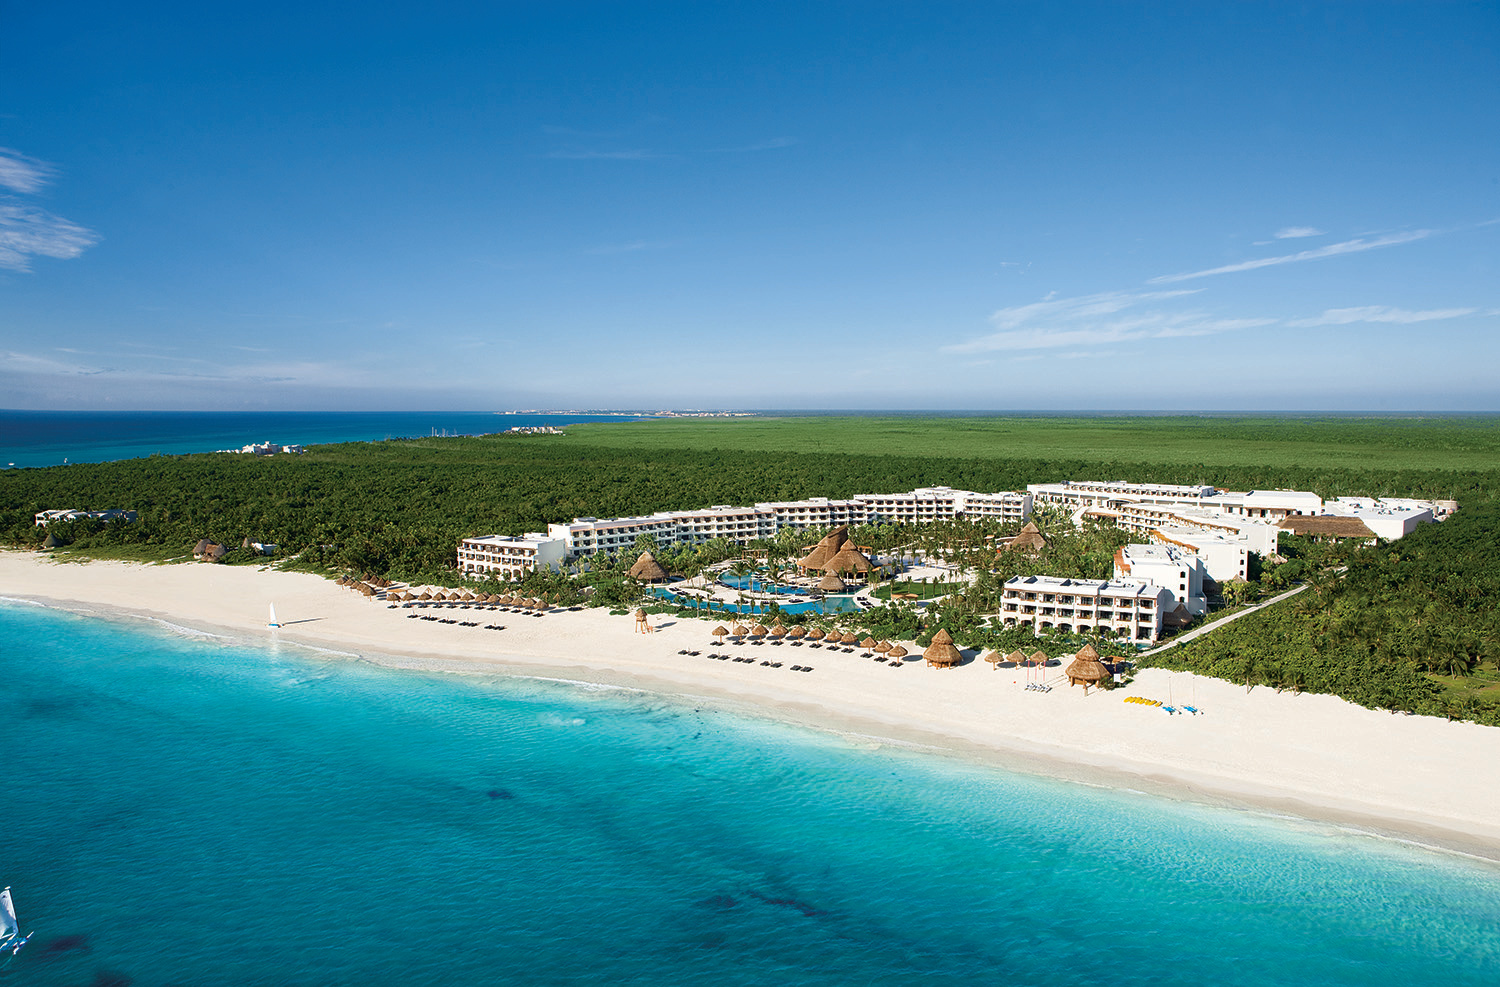 Travel Agency All-Inclusive Resort Secrets Maroma Beach Riviera Cancun 02